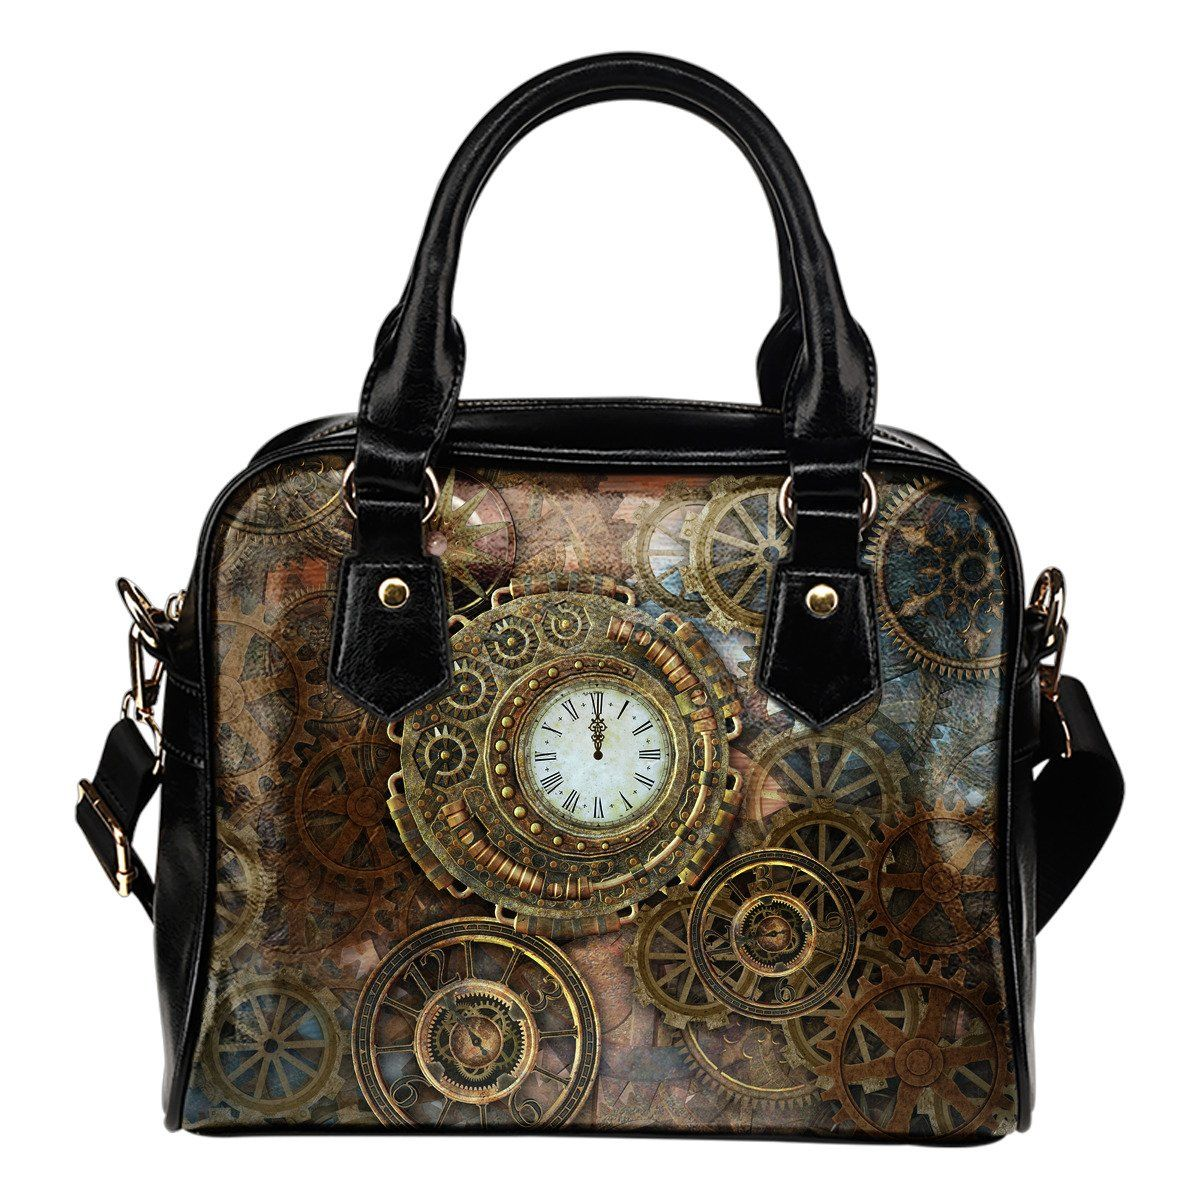 Steampunk Clocks & Gears Leather Handbag